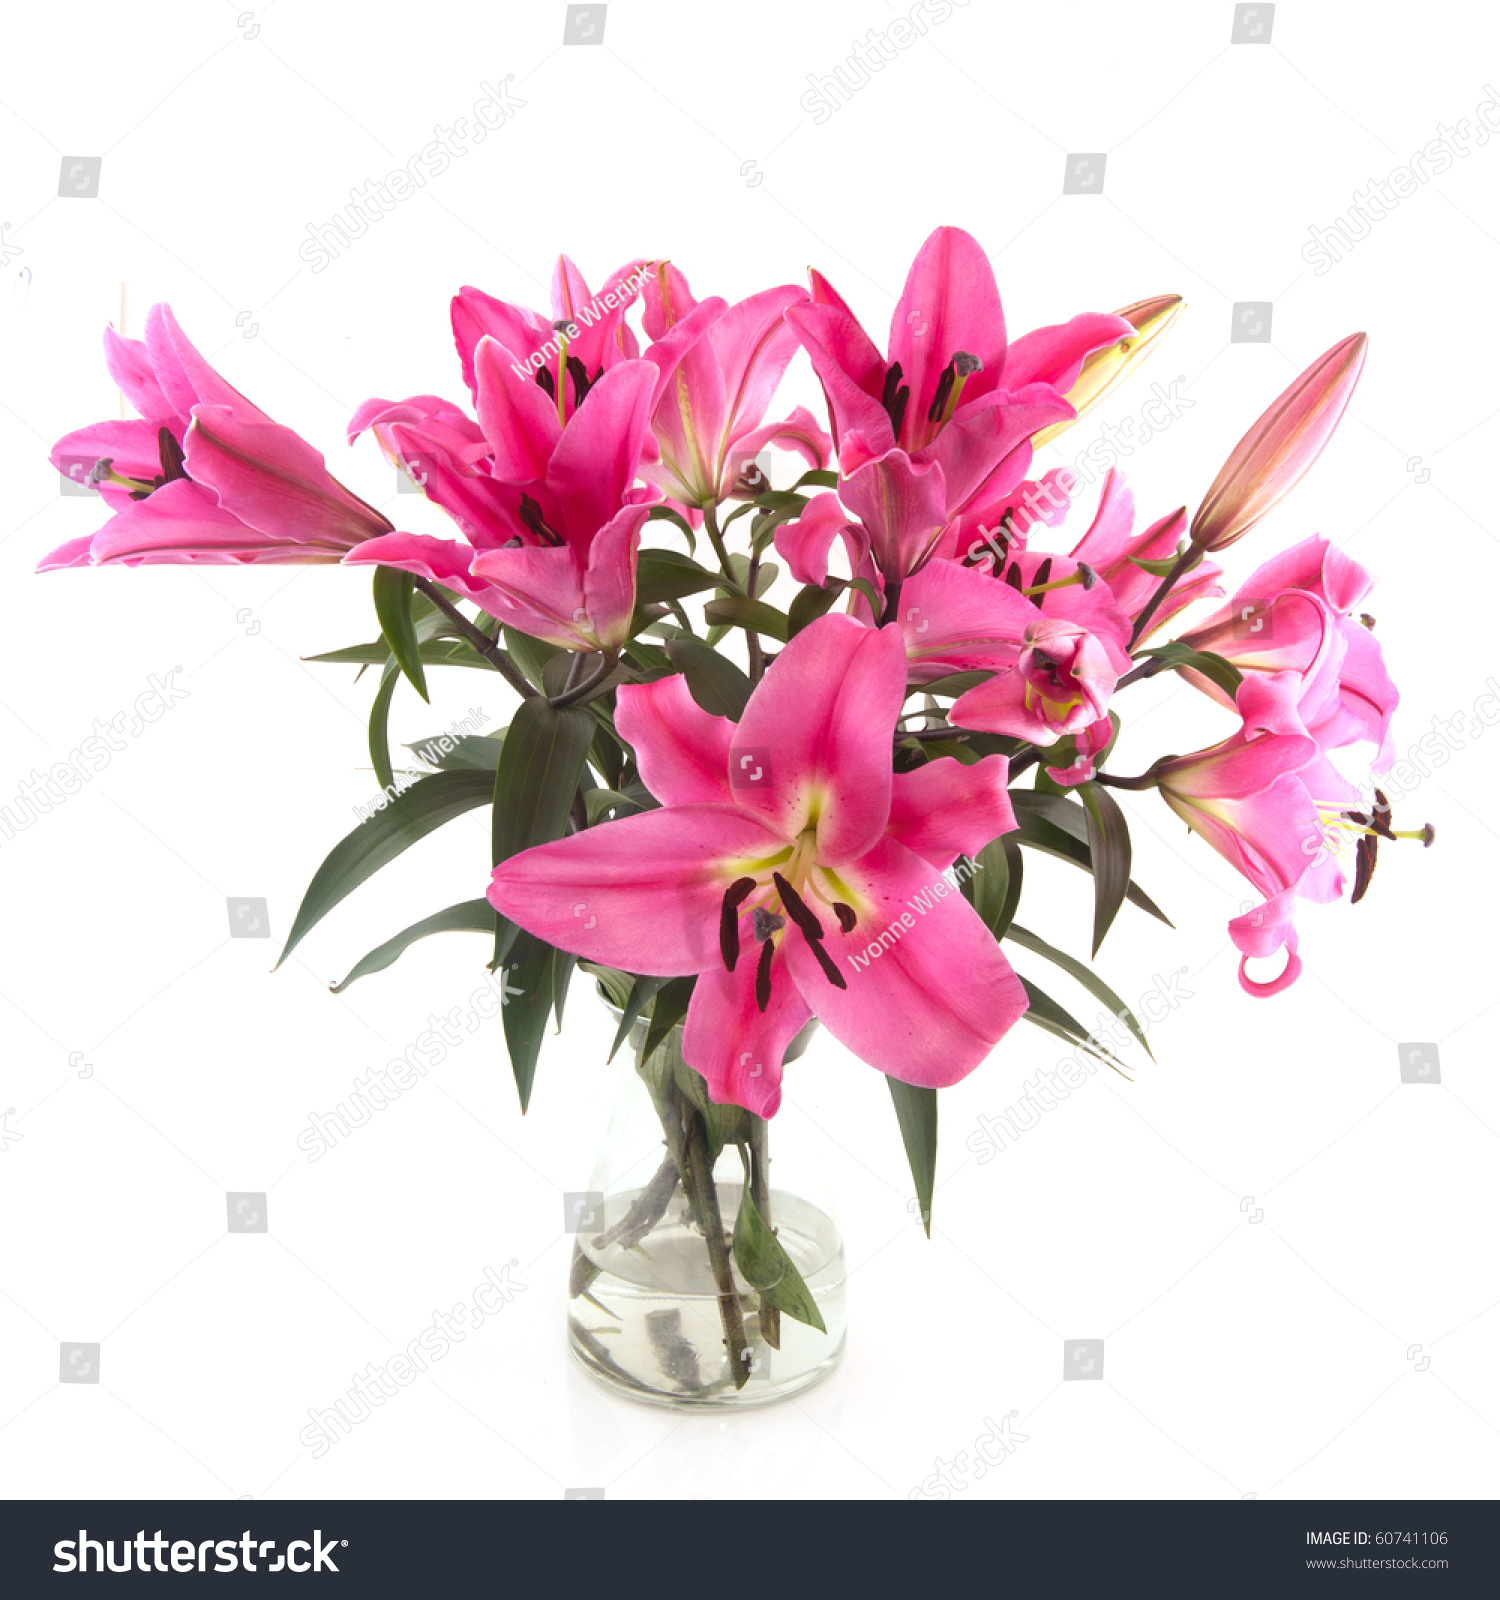 Bouquet Pink Lily Flowers Glass Vase Stock Photo Download Now